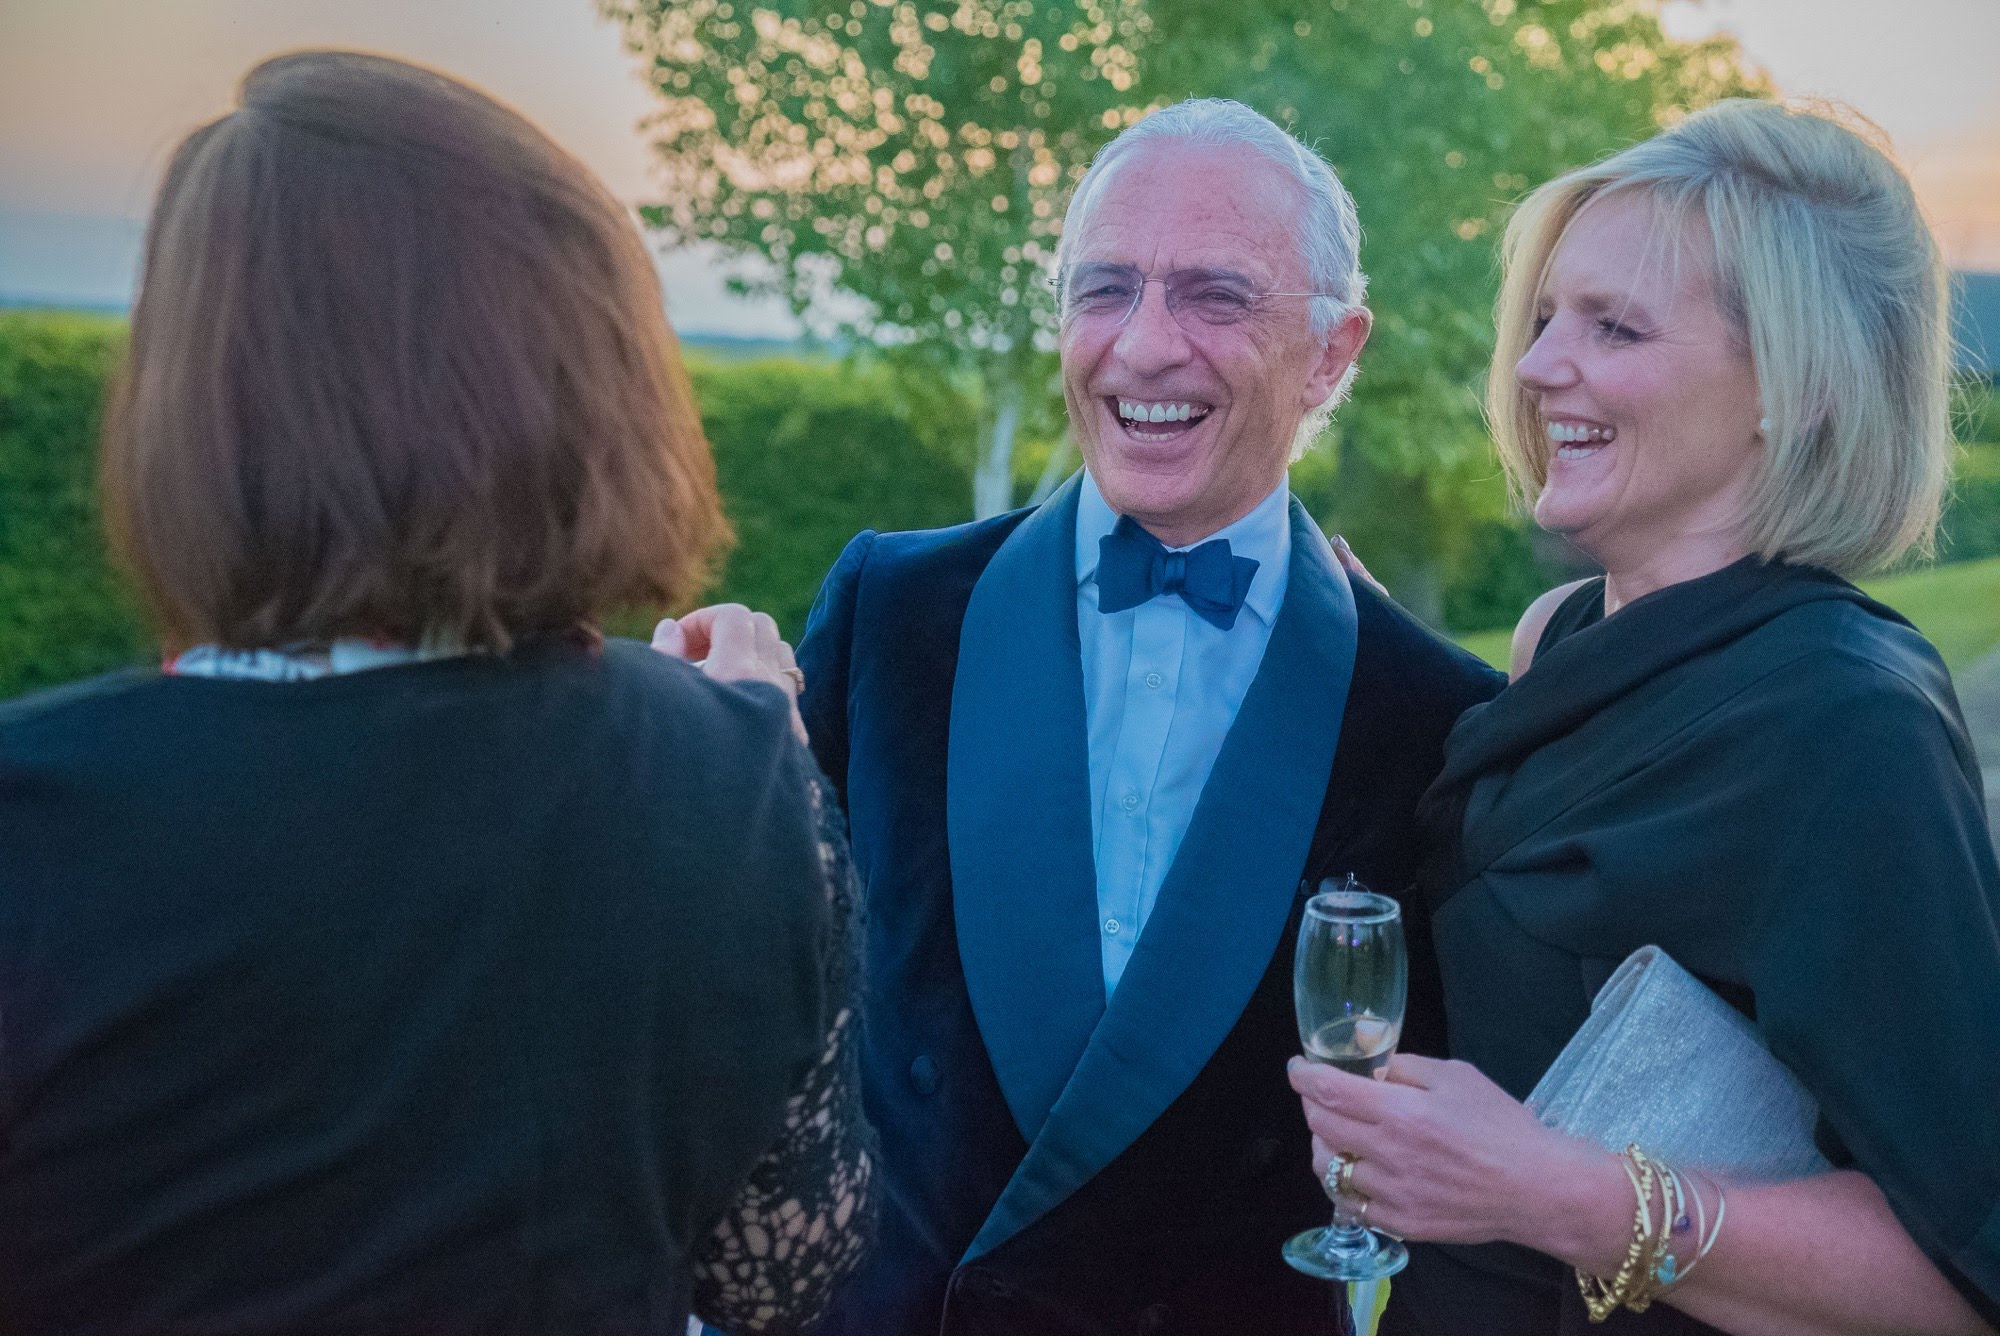 Partygoers in black tie at a summer garden party organised by 60th birthday party planners